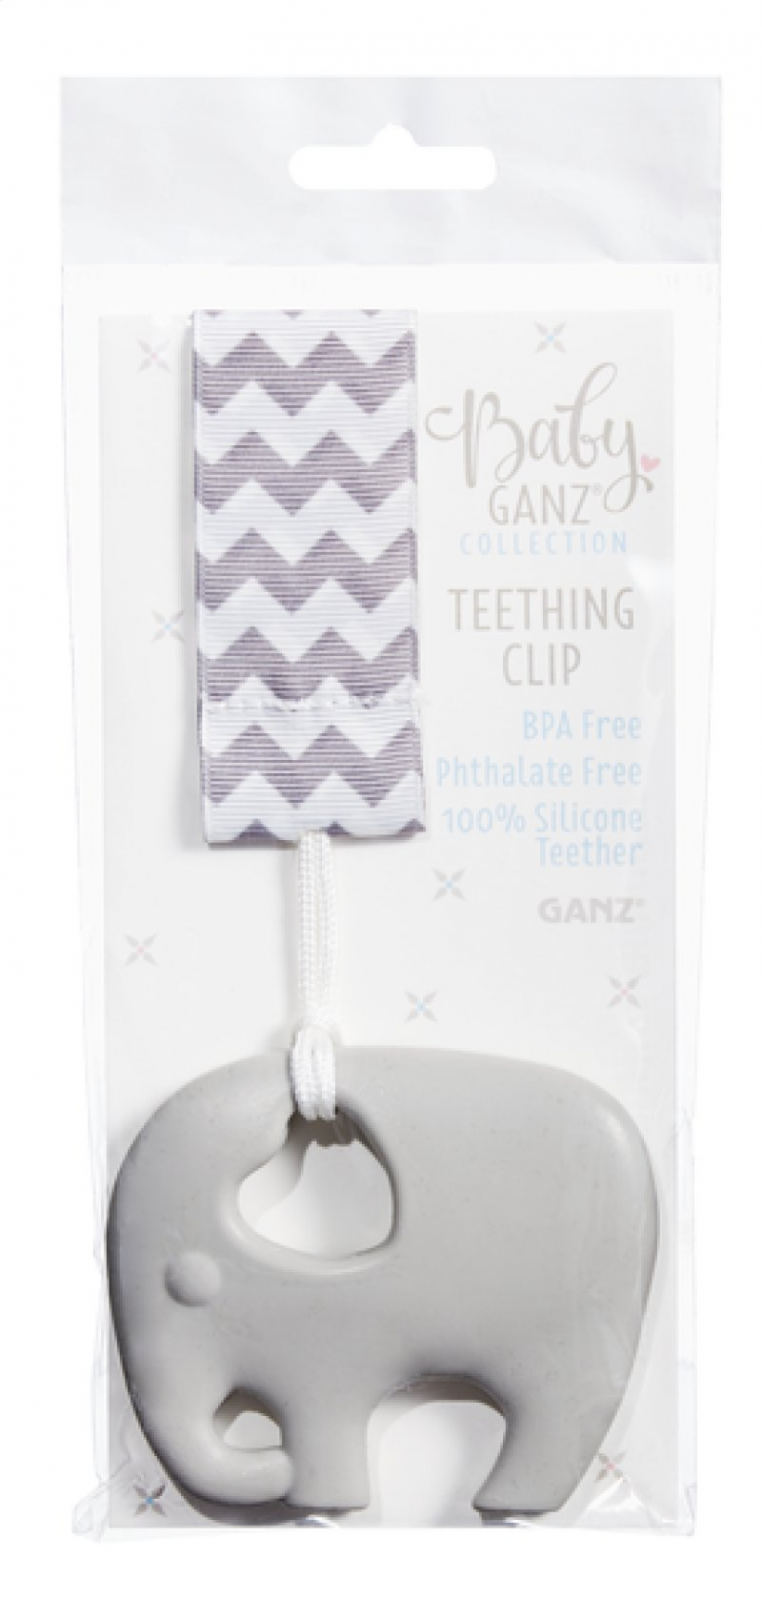 Ganz | Elephant Teething Clip